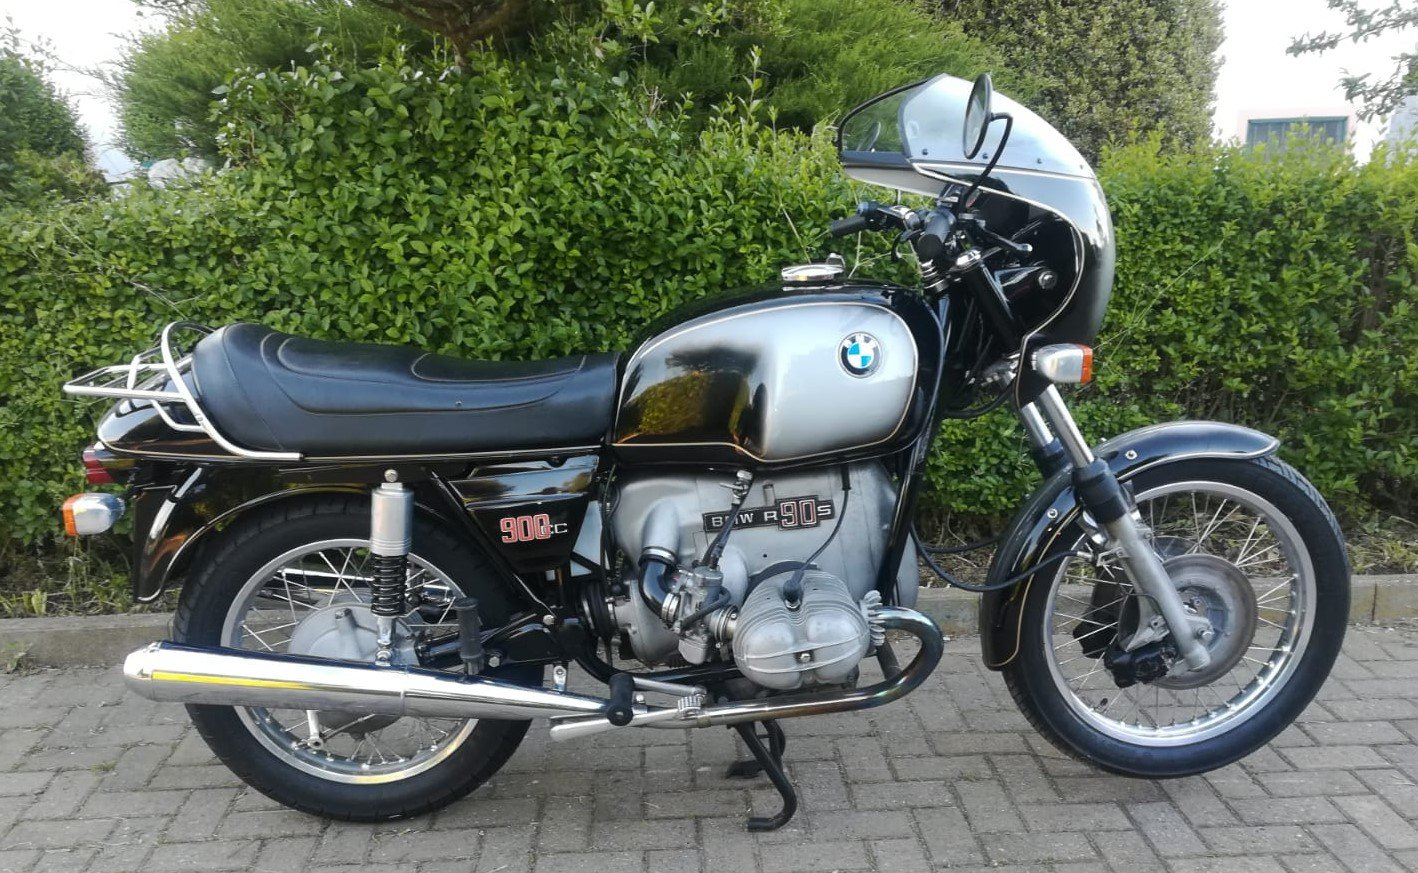 1974 Bmw R 90 S For Sale (picture 2 of 6)